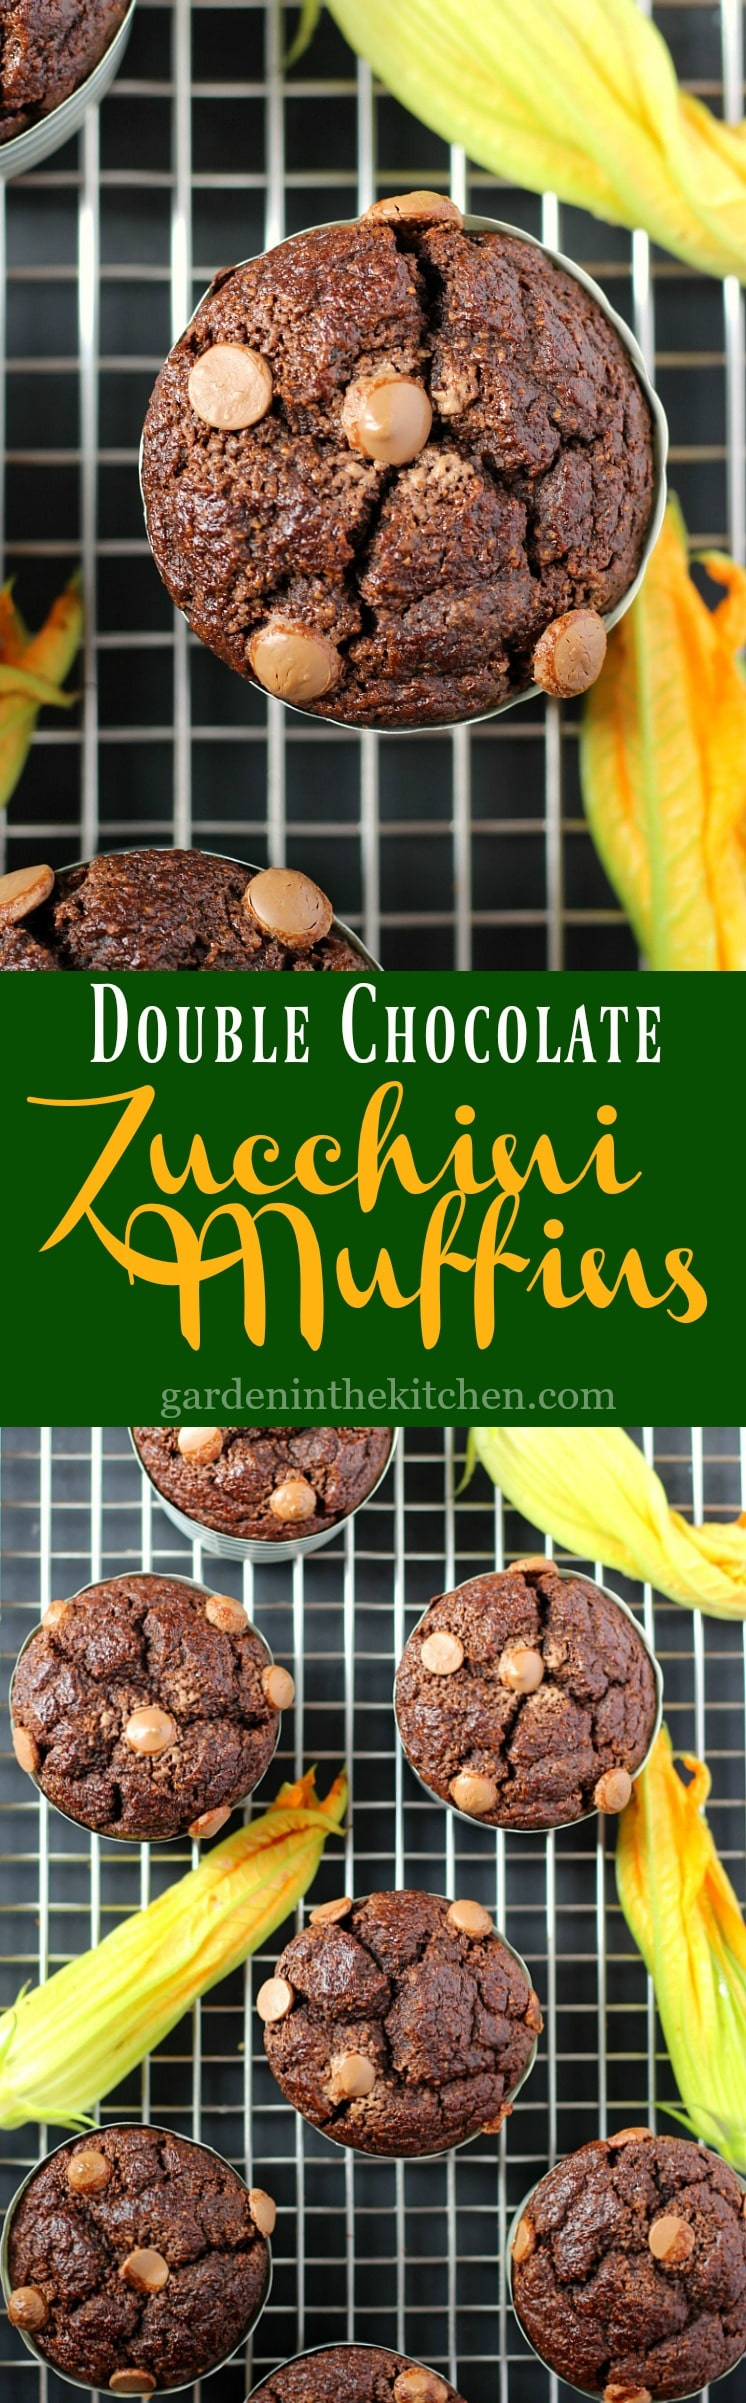 Double Chocolate Zucchini Muffins (Gluten-Free) | Garden in the Kitchen